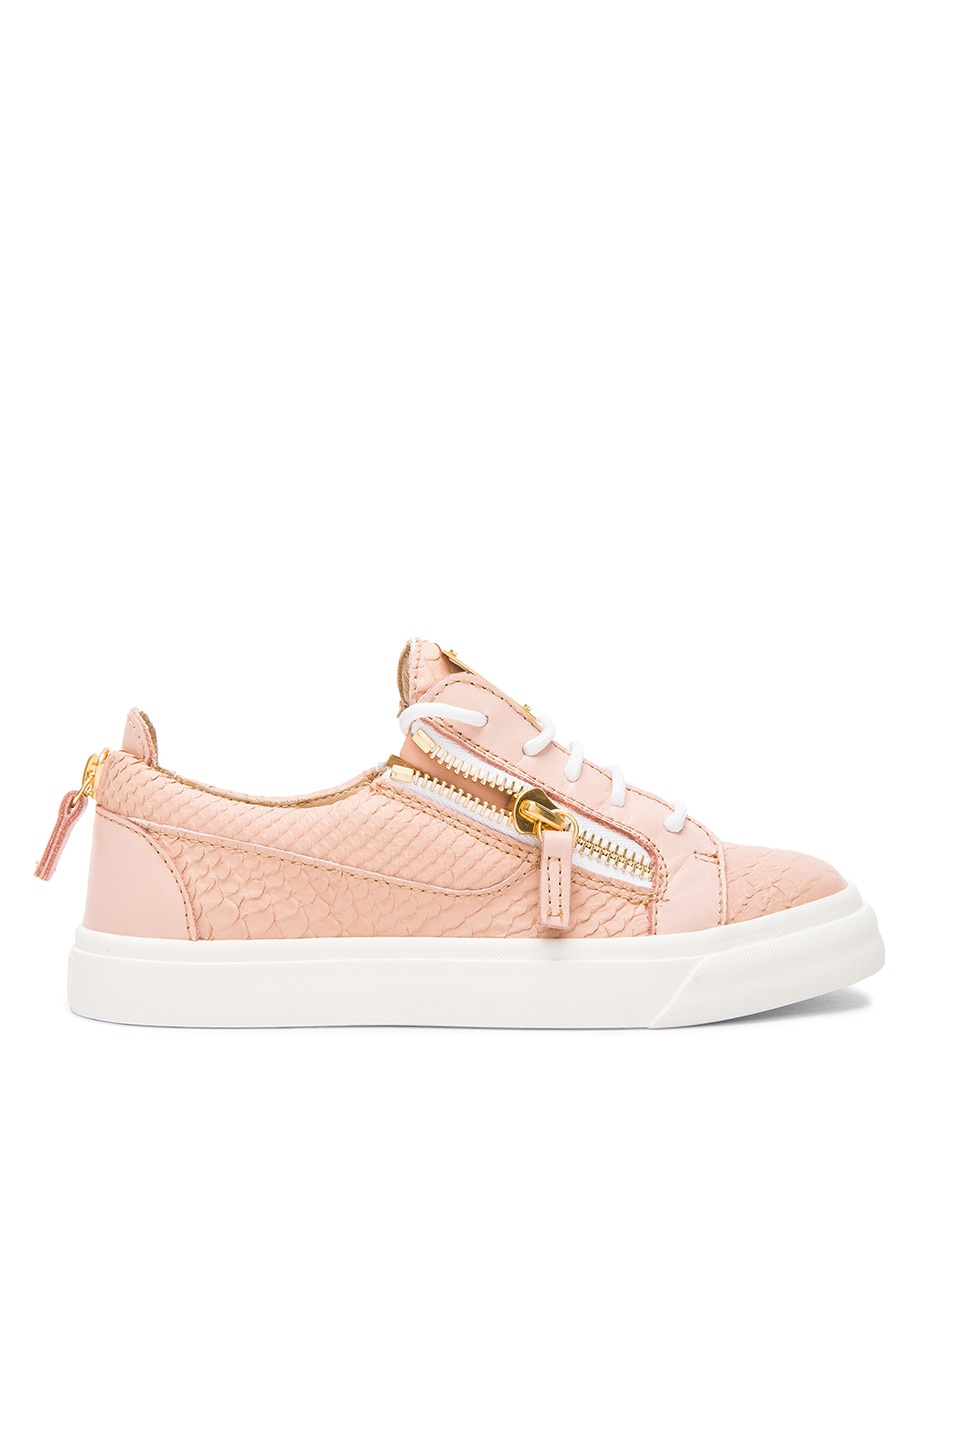 Image 1 of Giuseppe Zanotti Low Top Snakeskin Embossed Leather Sneakers in Pink